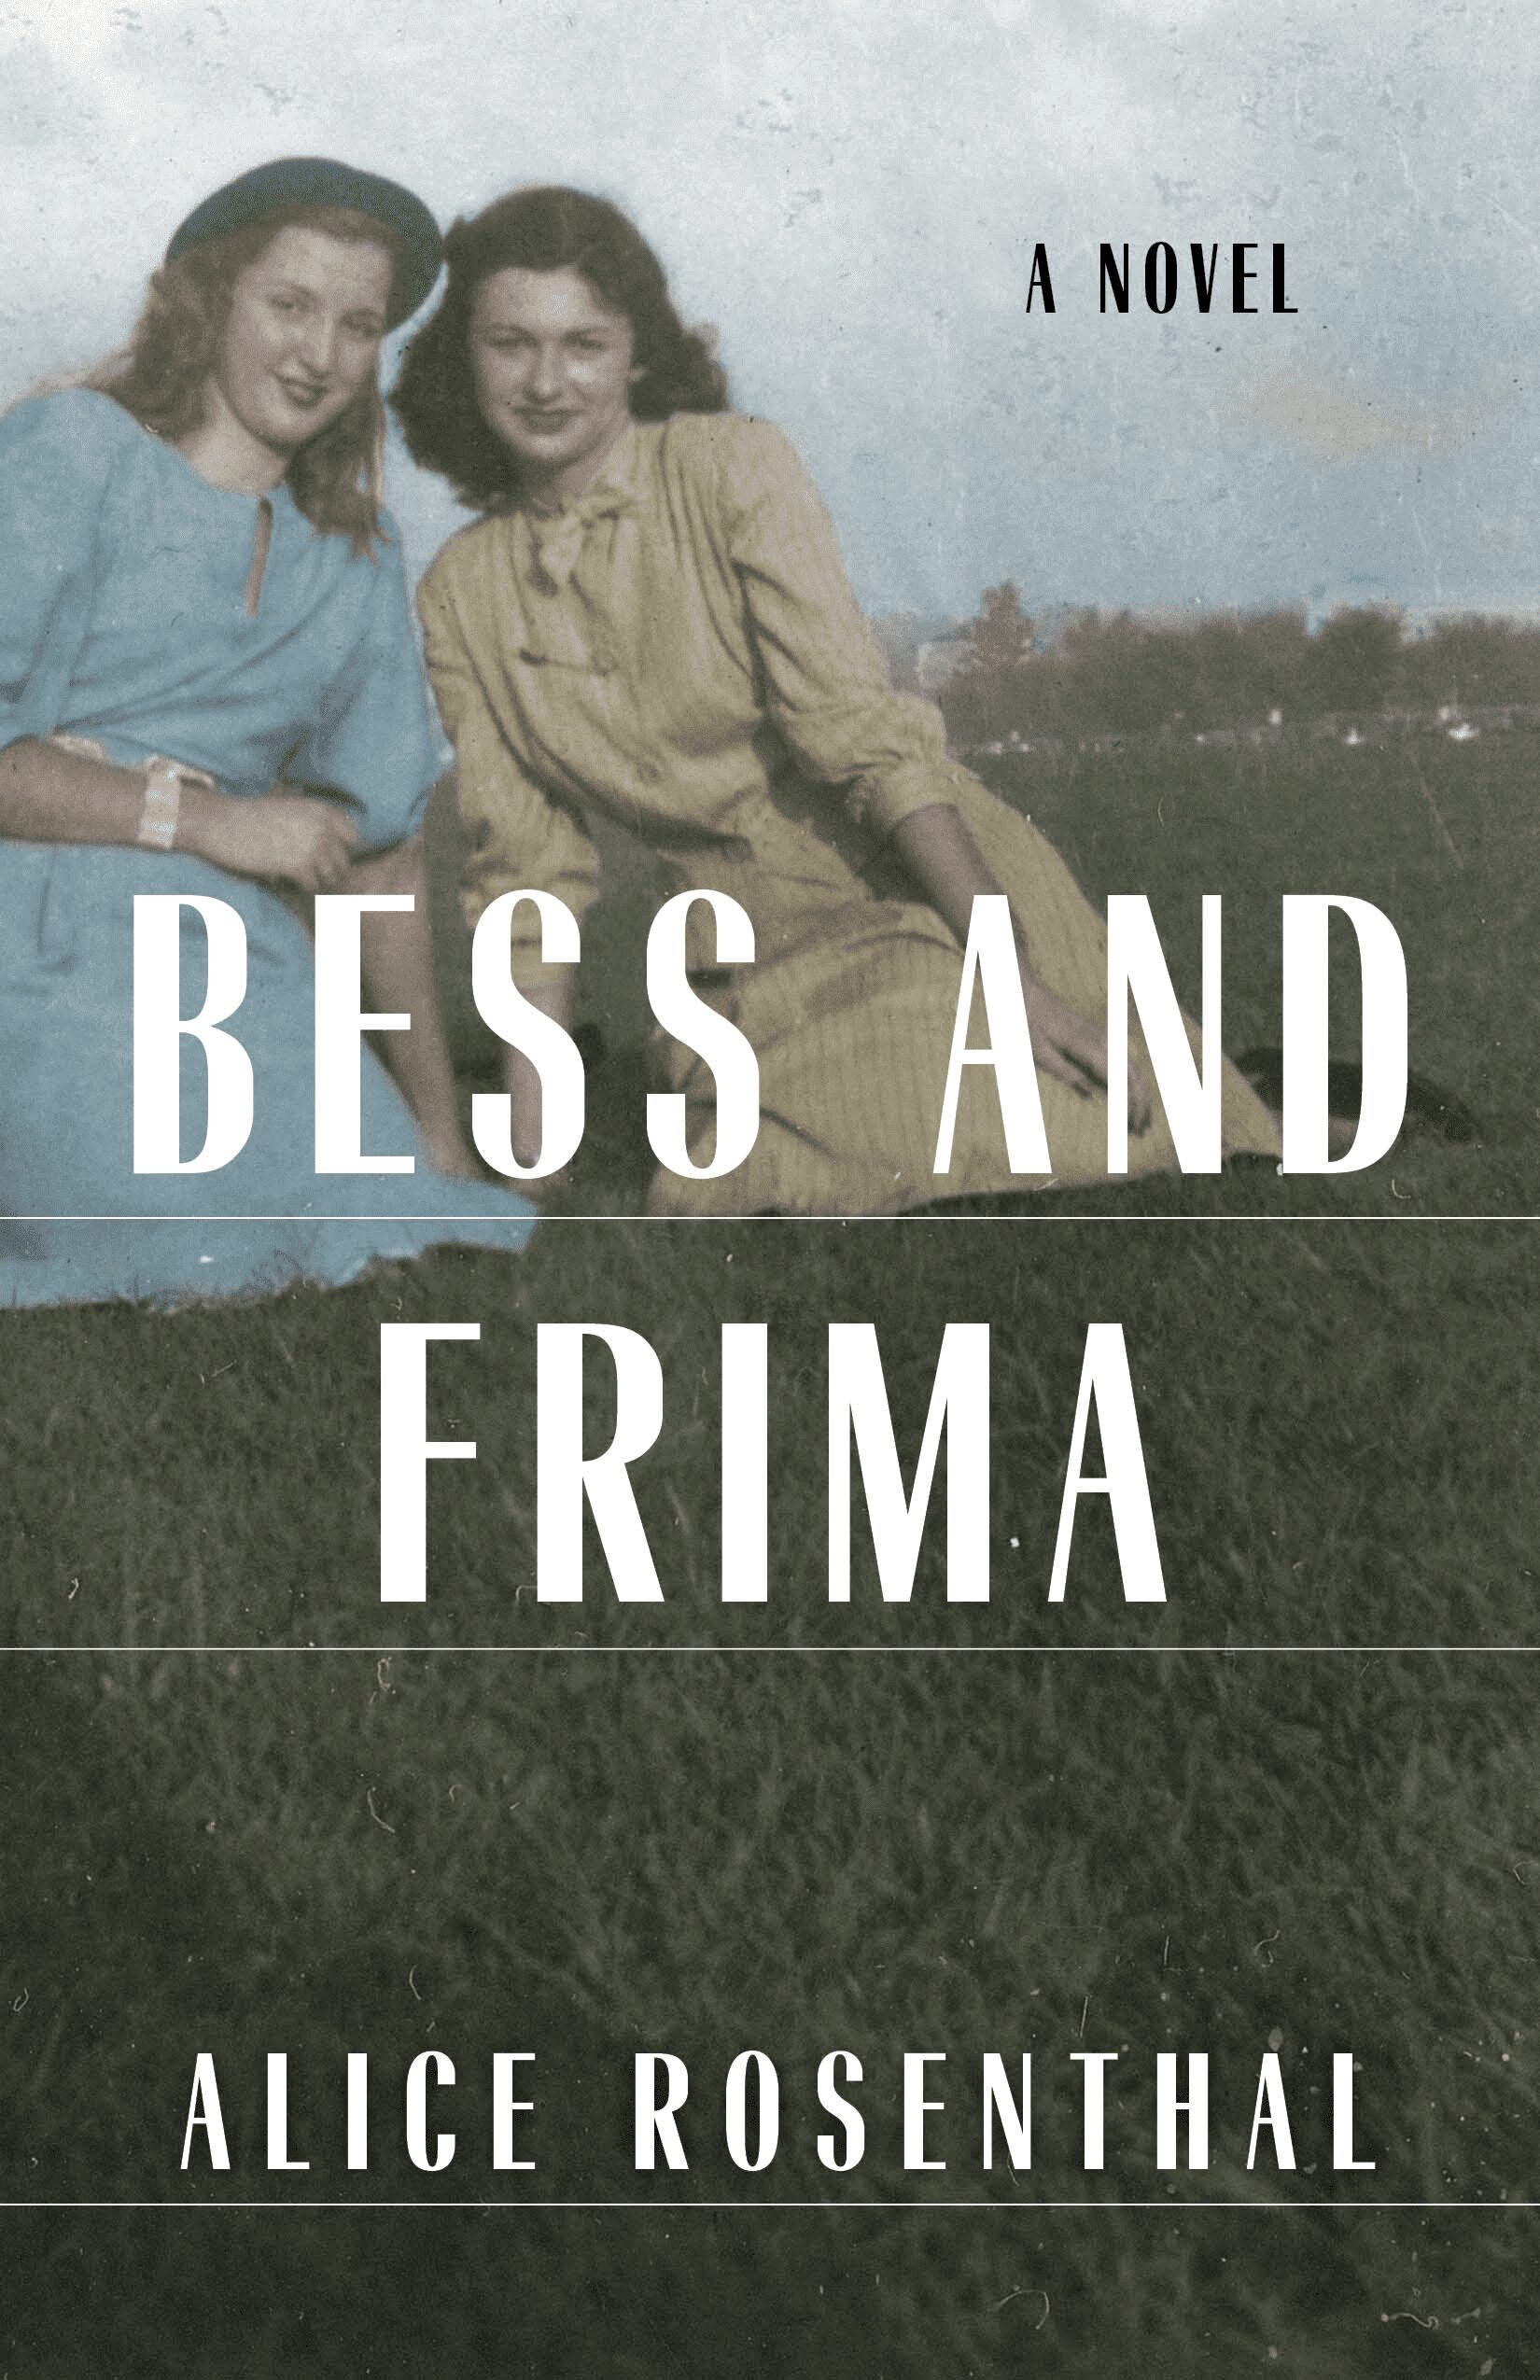 Bess and Frima by Alice Rosenthal